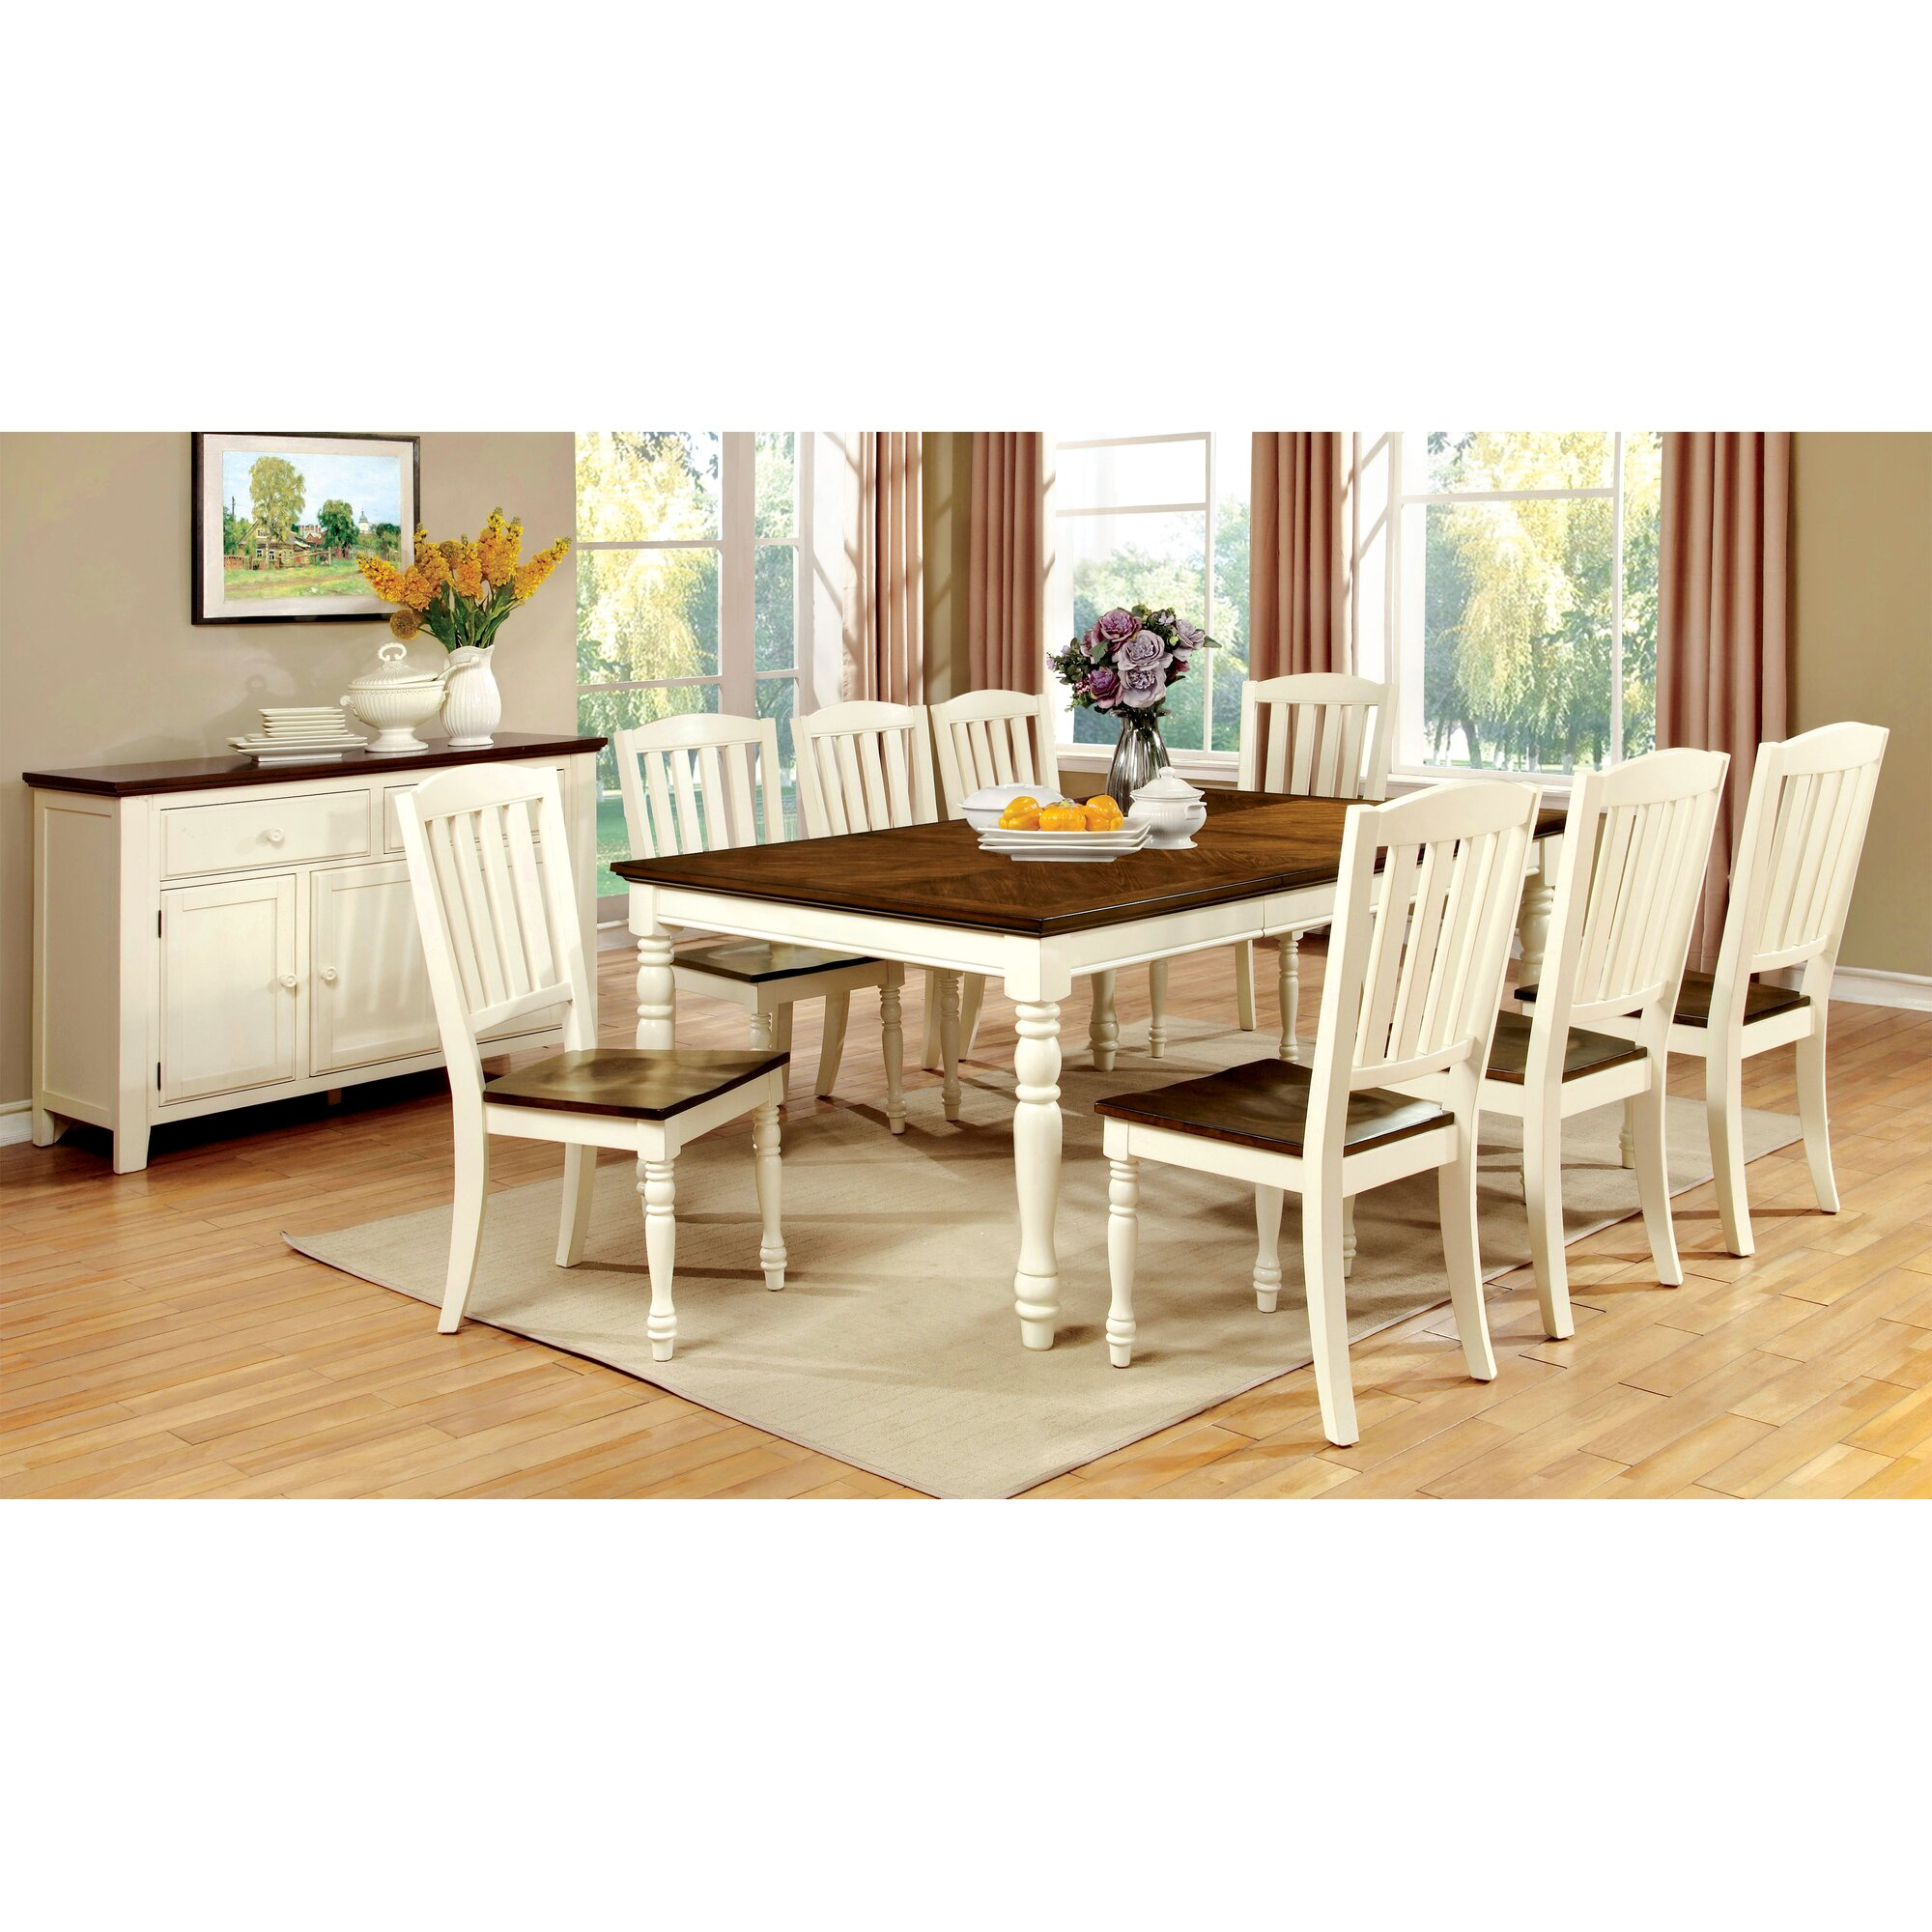 Hokku Designs Laureus Extendable Dining Table & Reviews | Wayfair